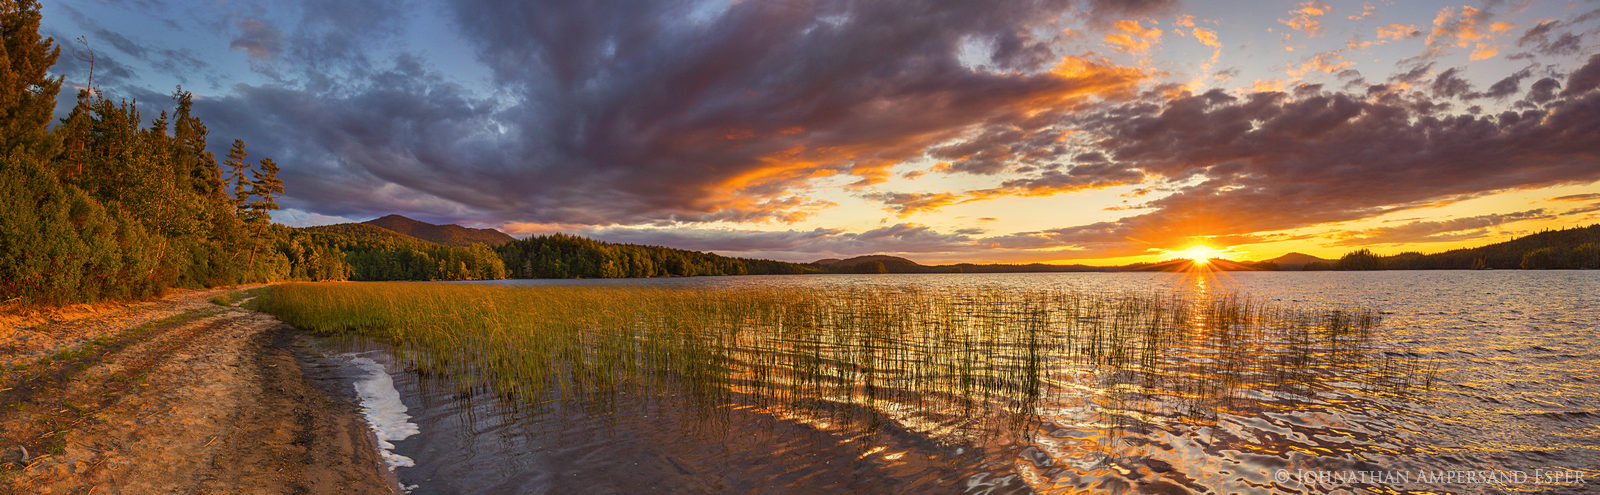 Middle Saranac Lake,Saranac Lake,summer sunset,summer,panorama,Ampersand,Ampersand Bay,Middle Saranac Lake,Saranac Lakes,, photo